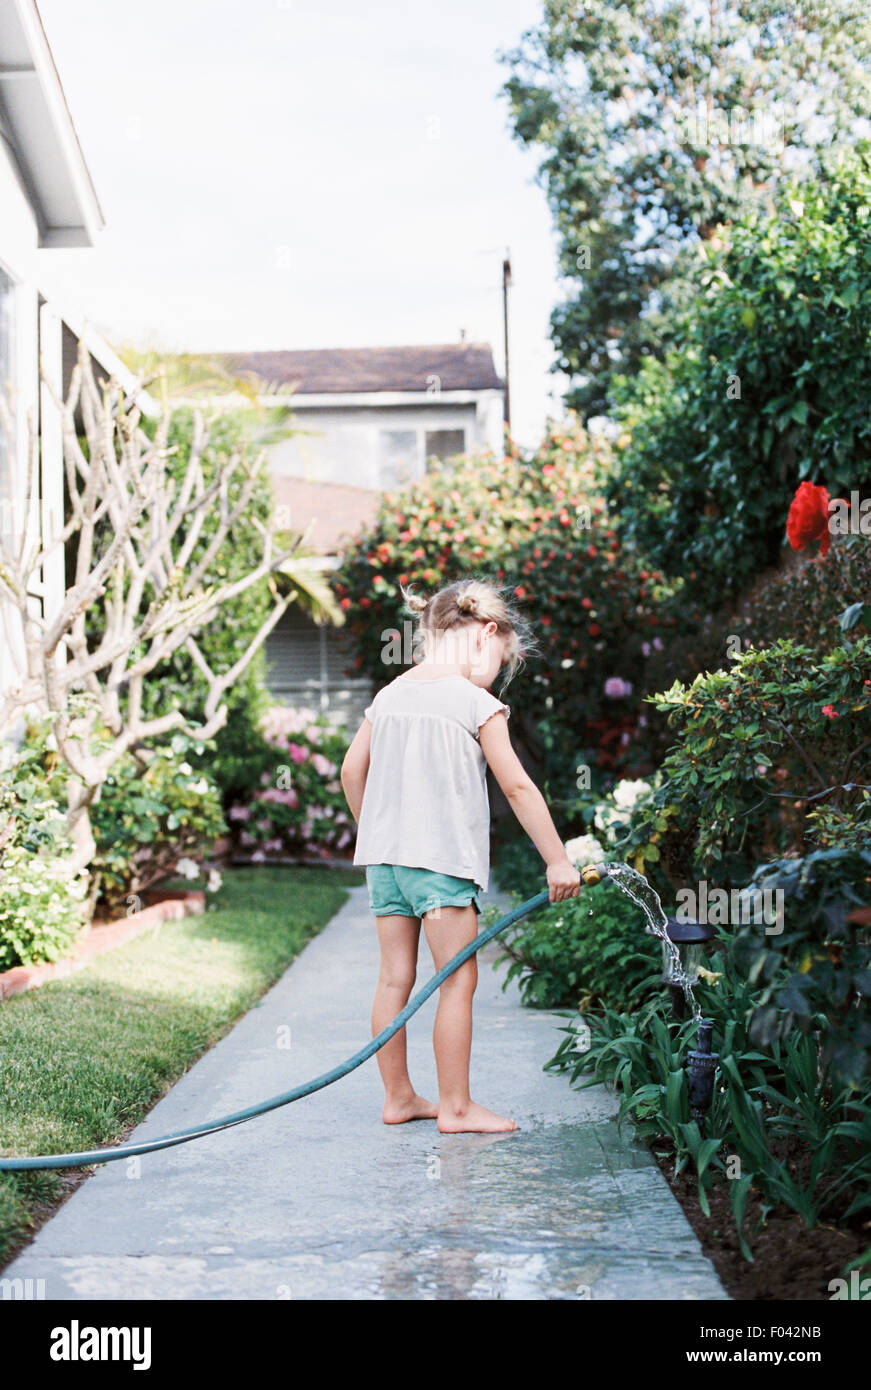 Young girl standing on a path in a garden, playing with a water hose. - Stock Image